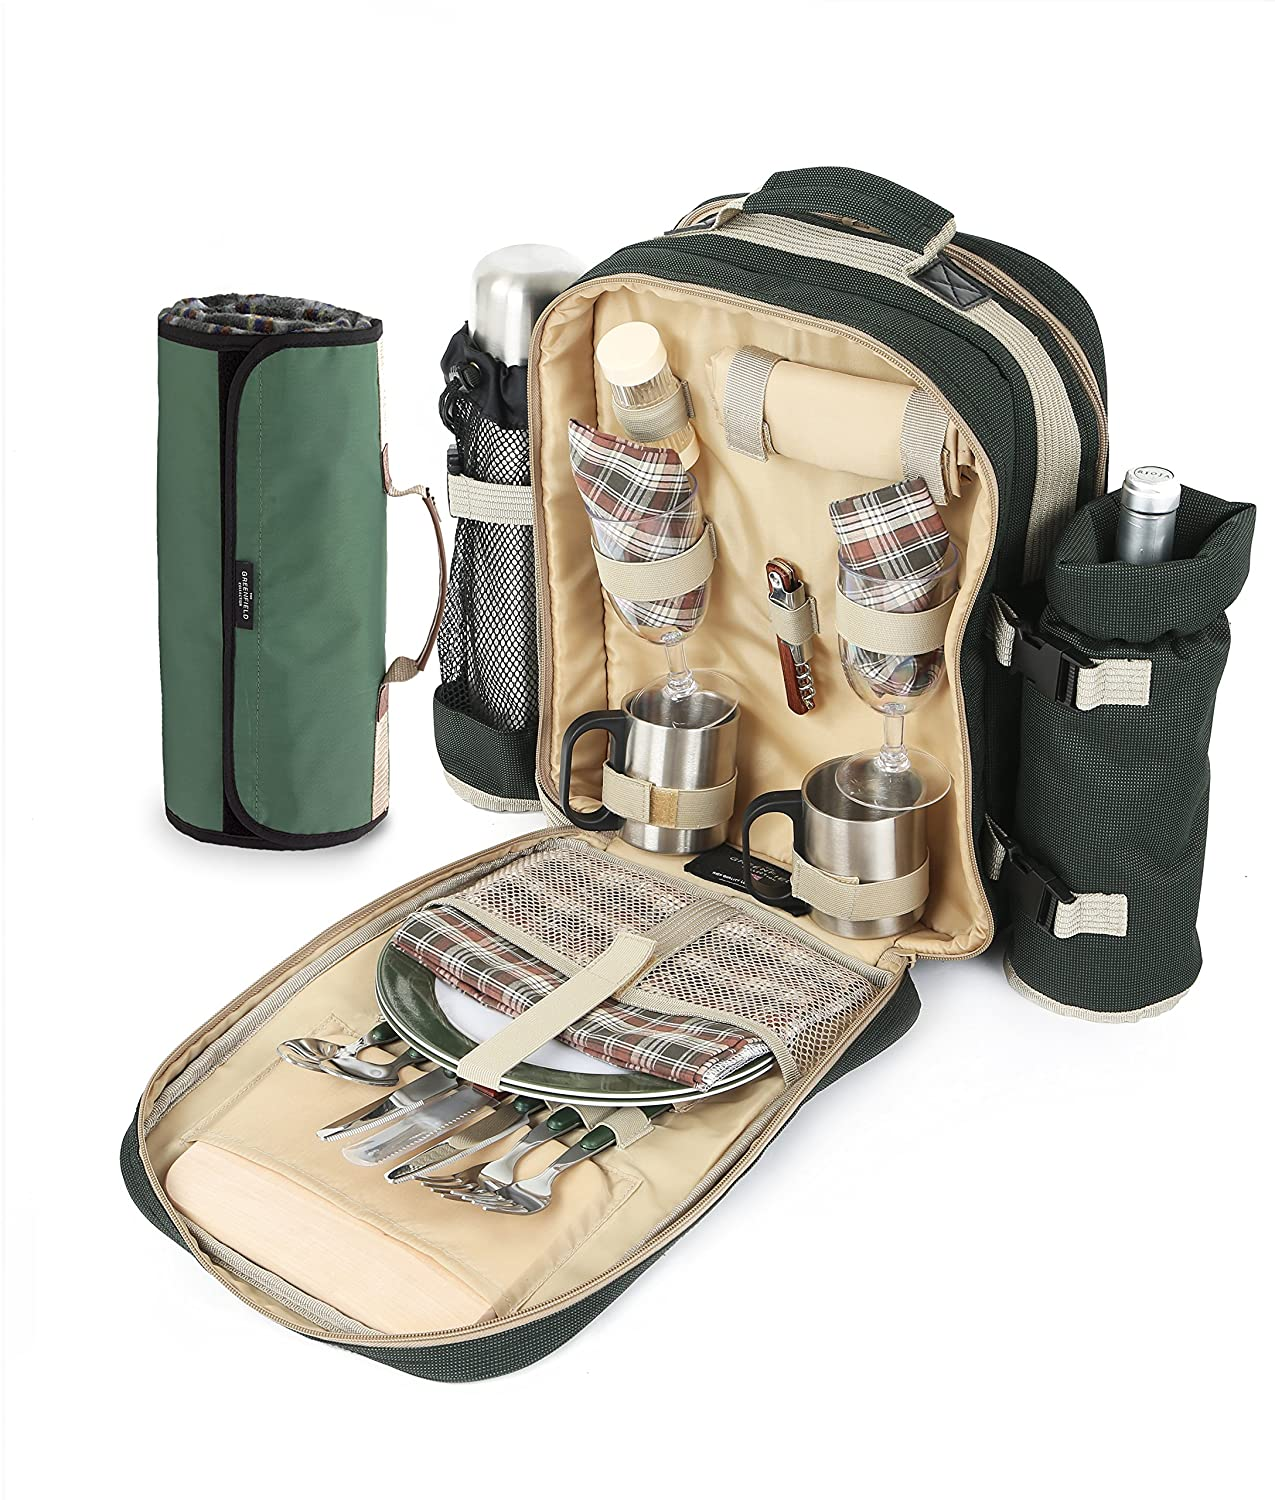 *The Greenfield Collection BPSD2DGHPW Super Deluxe zwei Personen Luxus Picknickrucksack mit passender Picknickdecke*